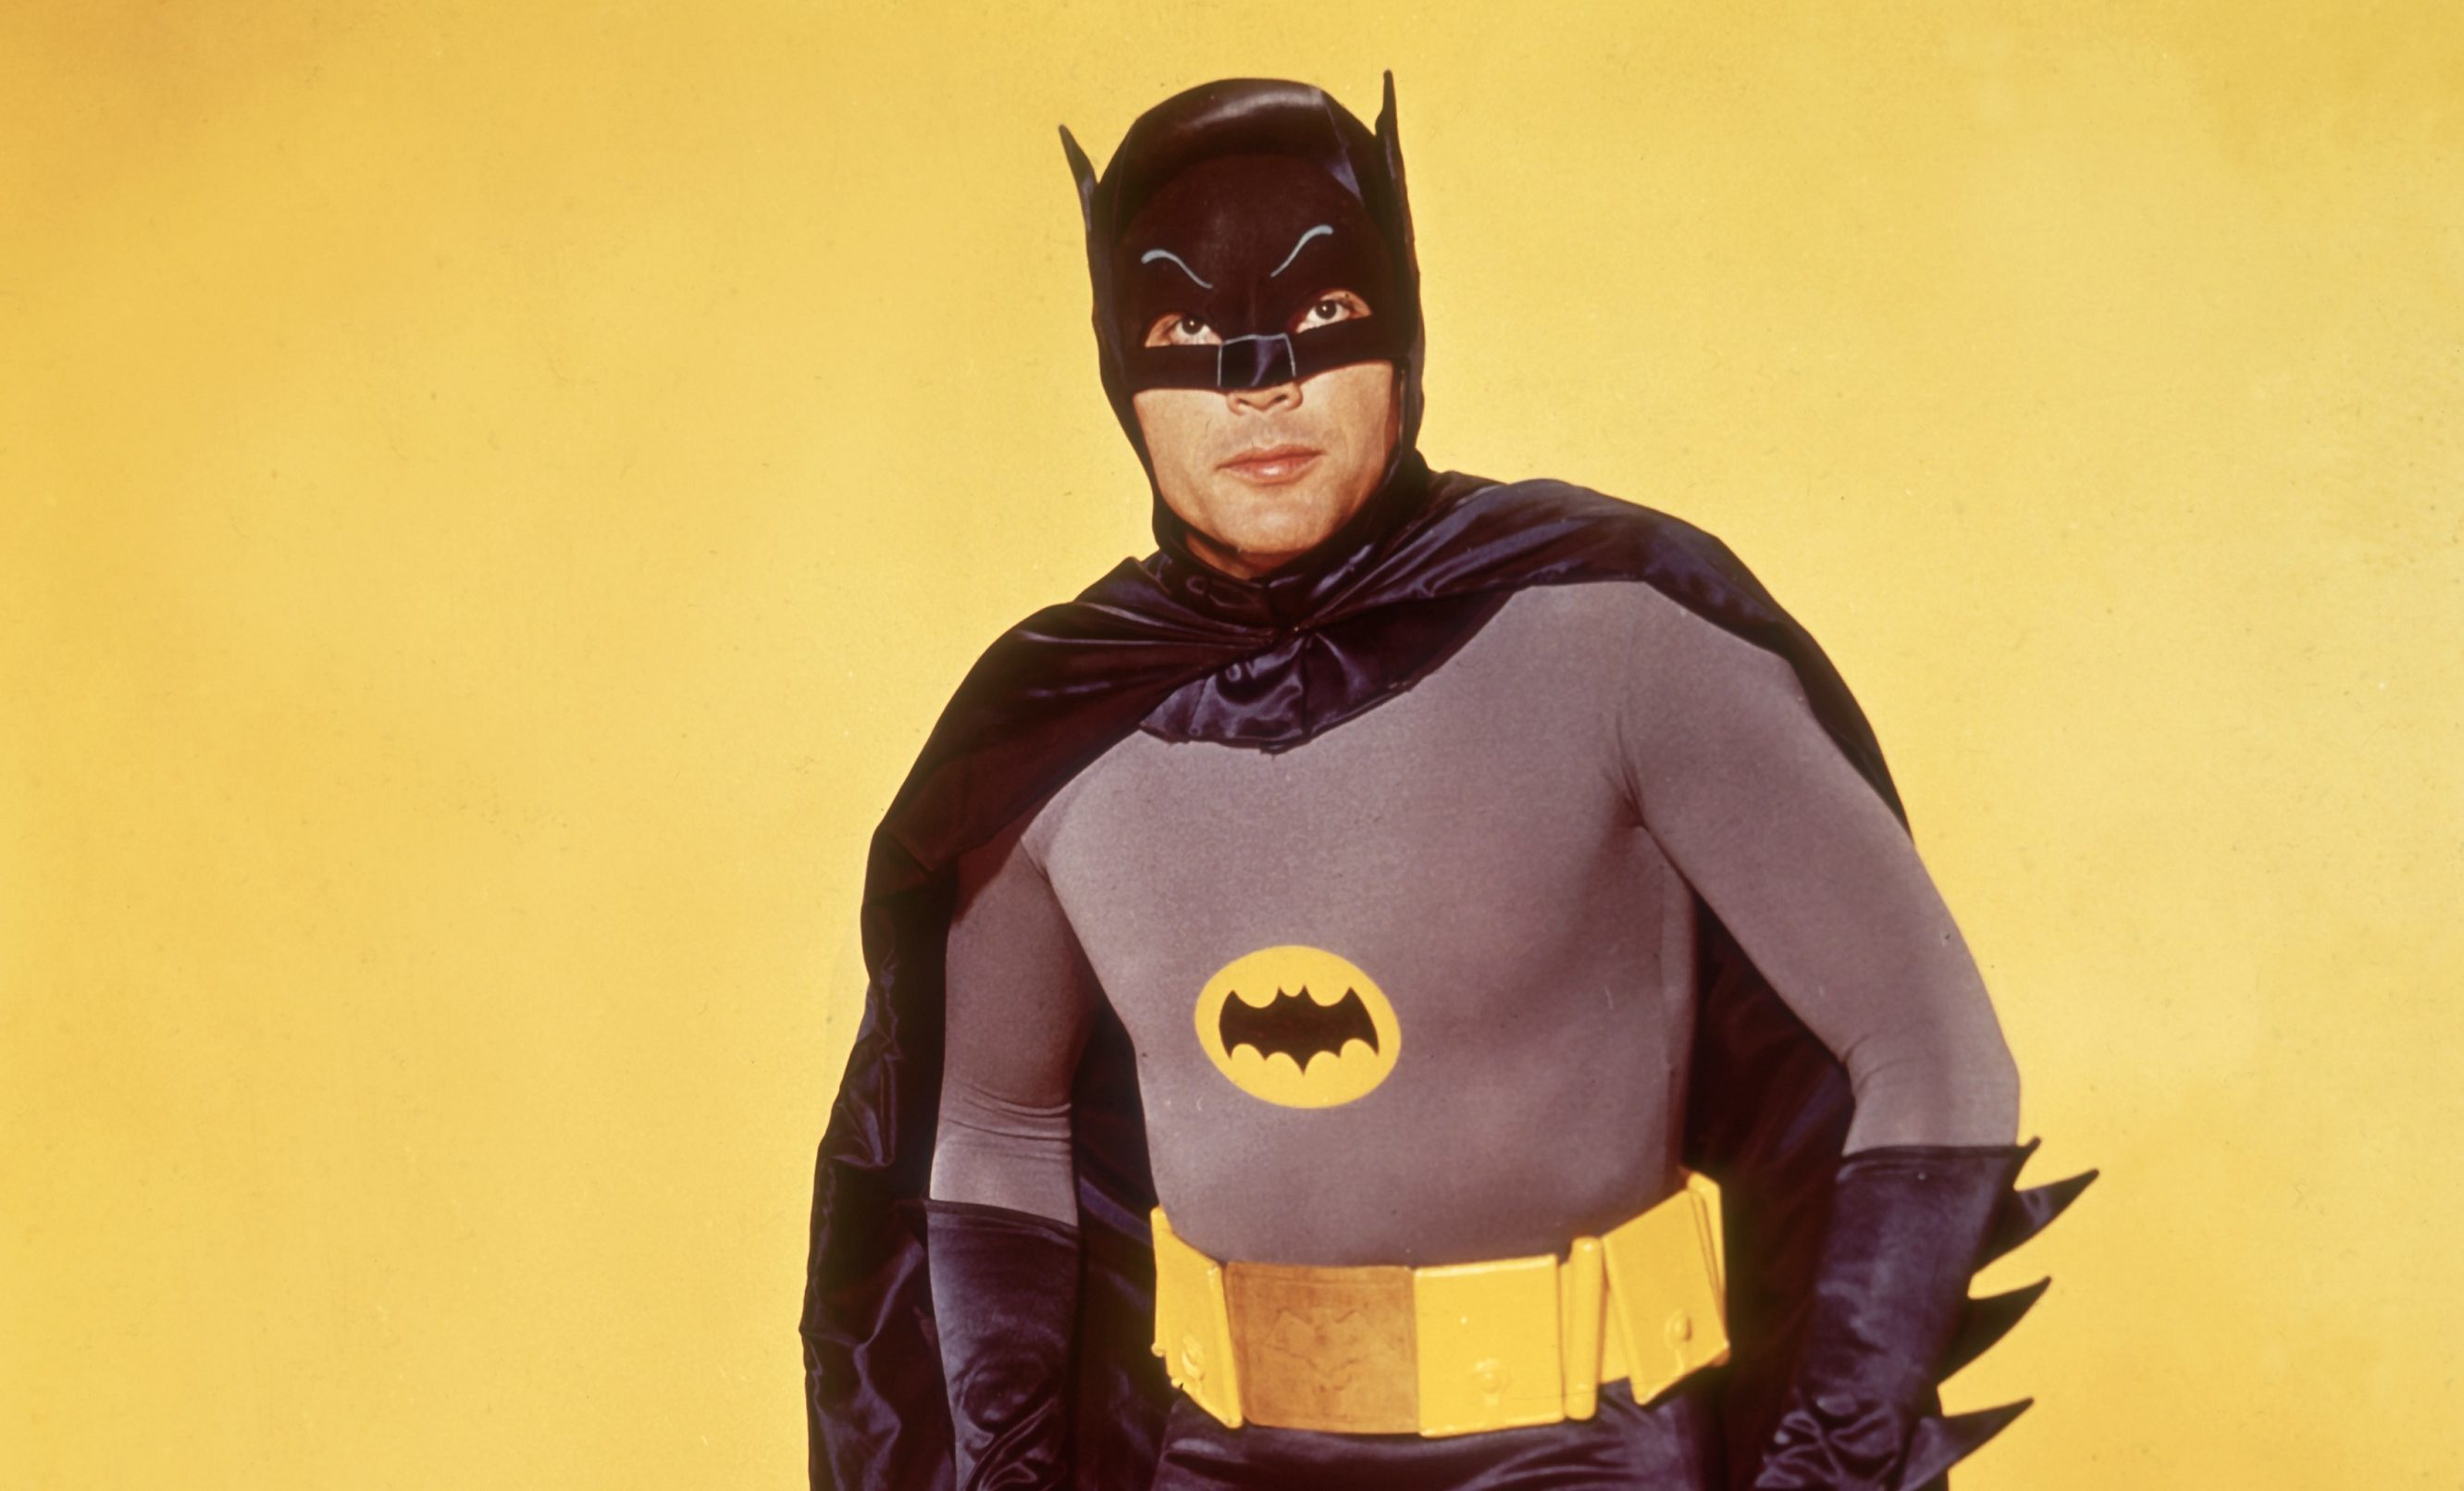 Adam West as Batman for the 1966 movie.